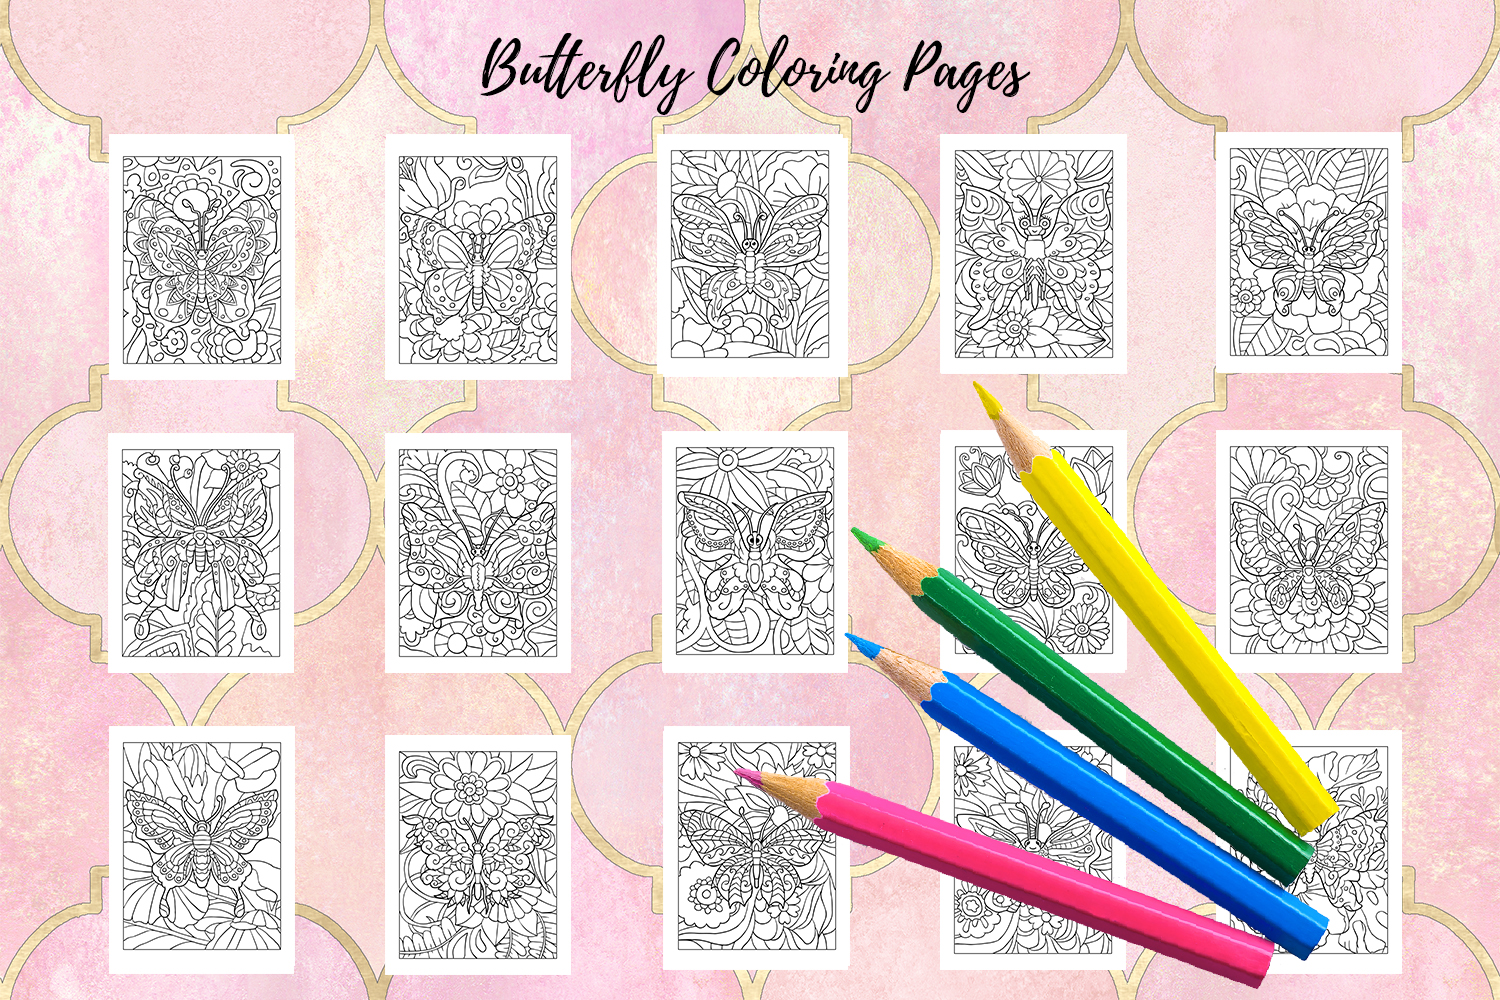 Coloring Pages For Kids - 15 Butterfly Coloring Pages example image 2